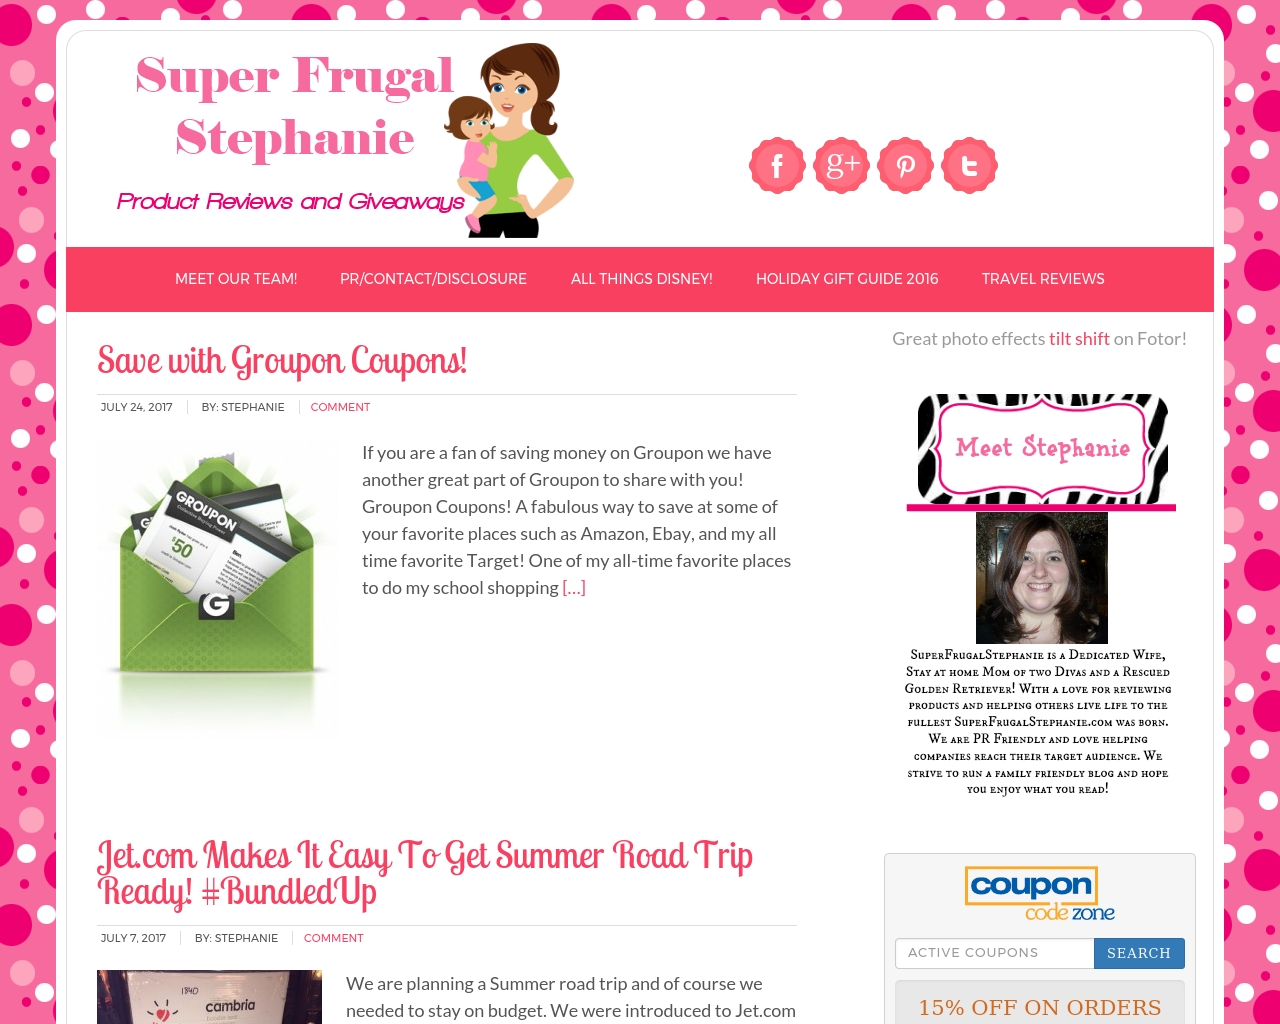 Super-Frugal-Stephanie-Product-Reviews-And-Giveaways-Advertising-Reviews-Pricing